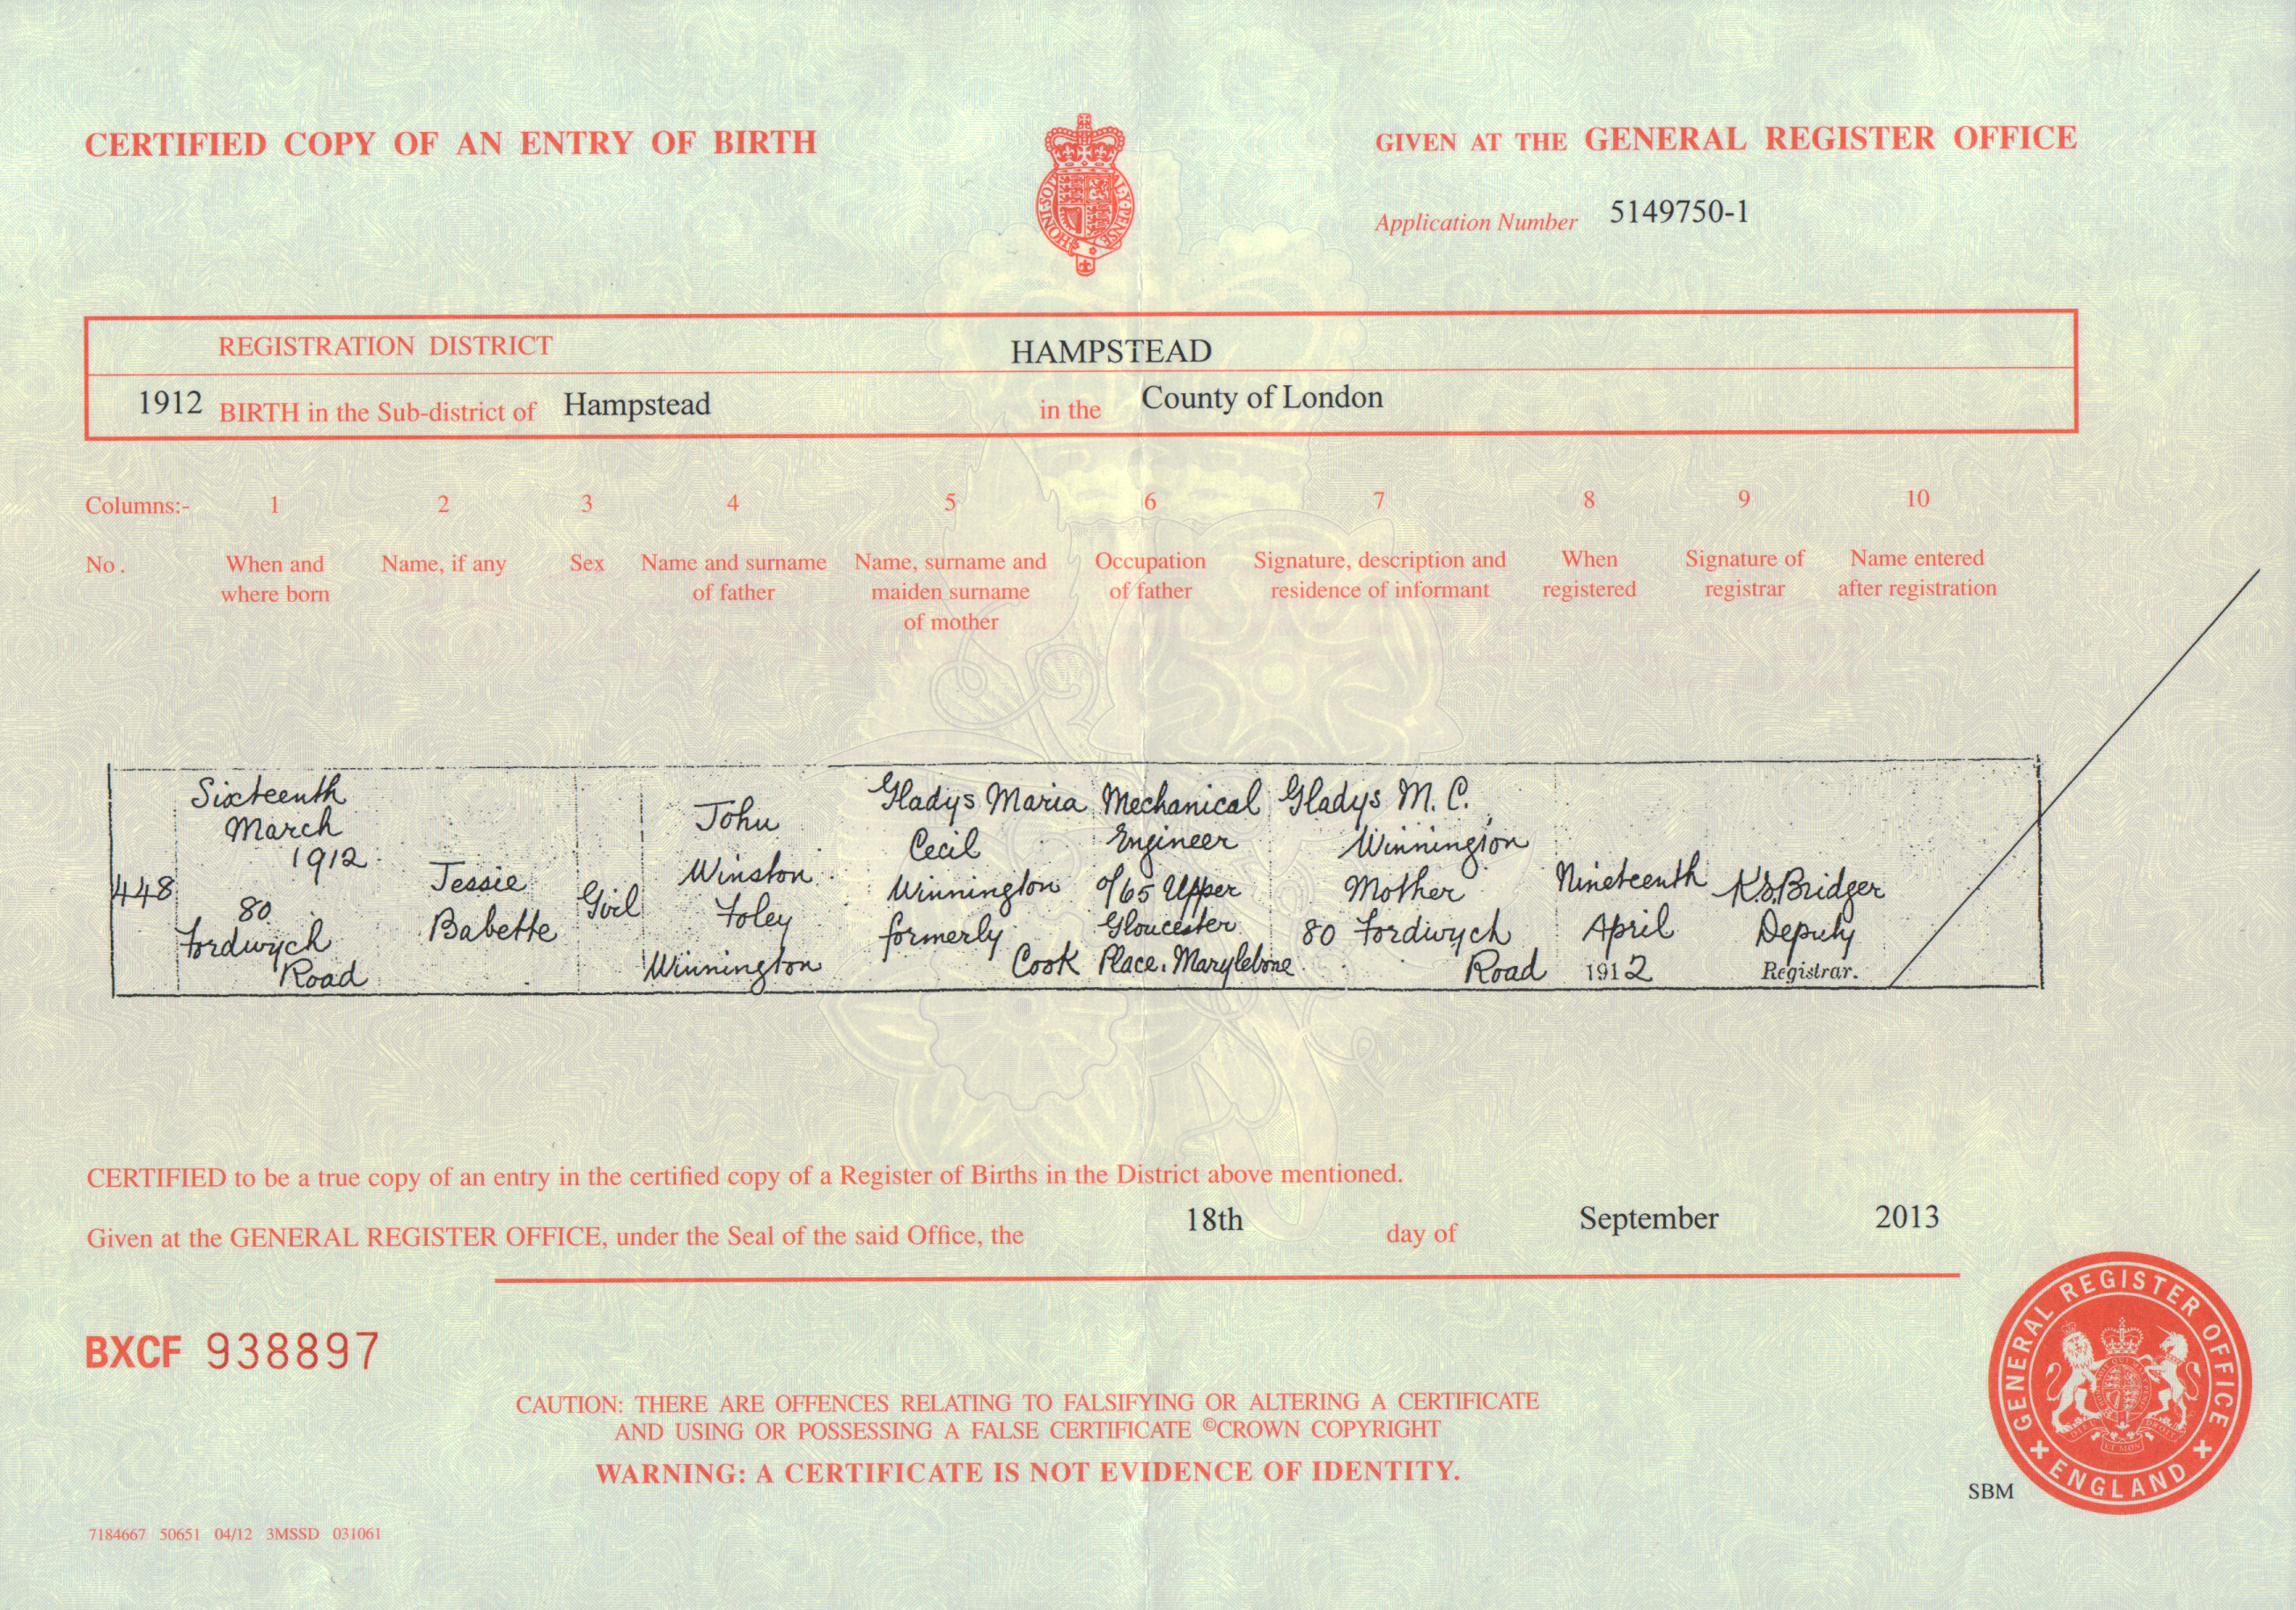 Birth certificate gabrielle ray jessie babette winnington birth certificate 16th march 1912 aiddatafo Images